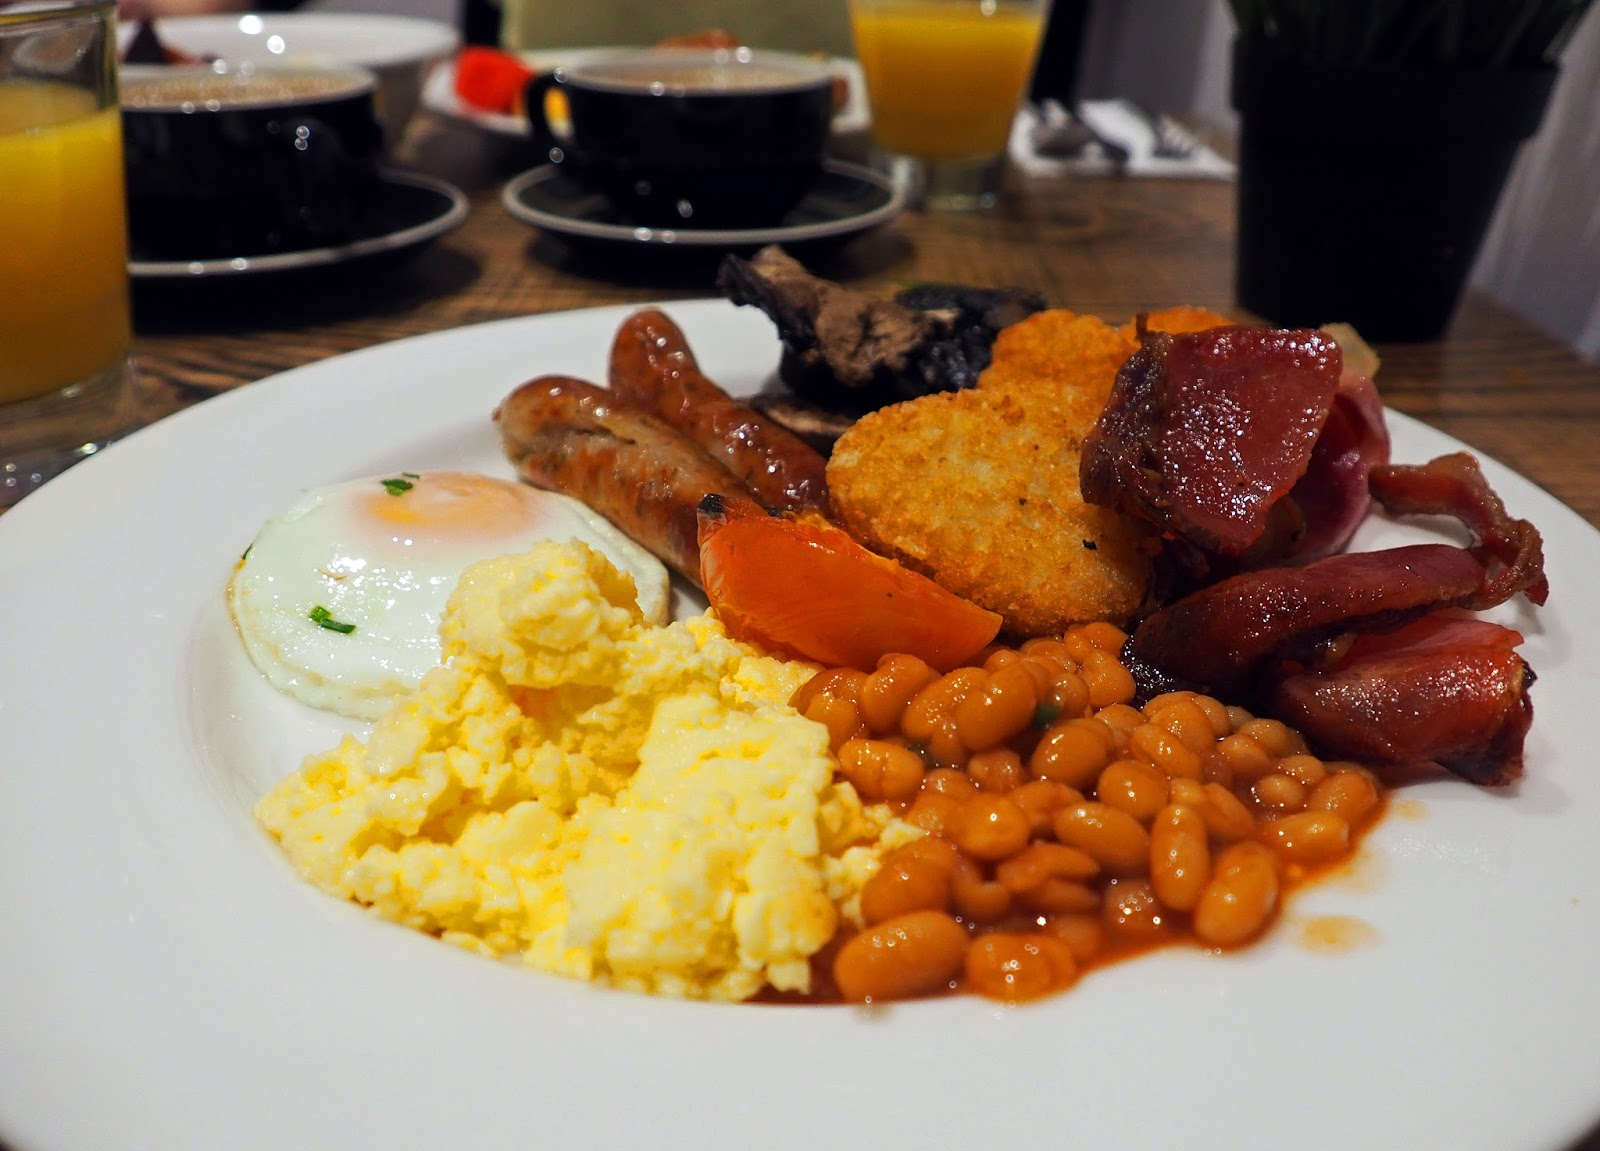 Cooked Breakfast at Rydges Sydney Central